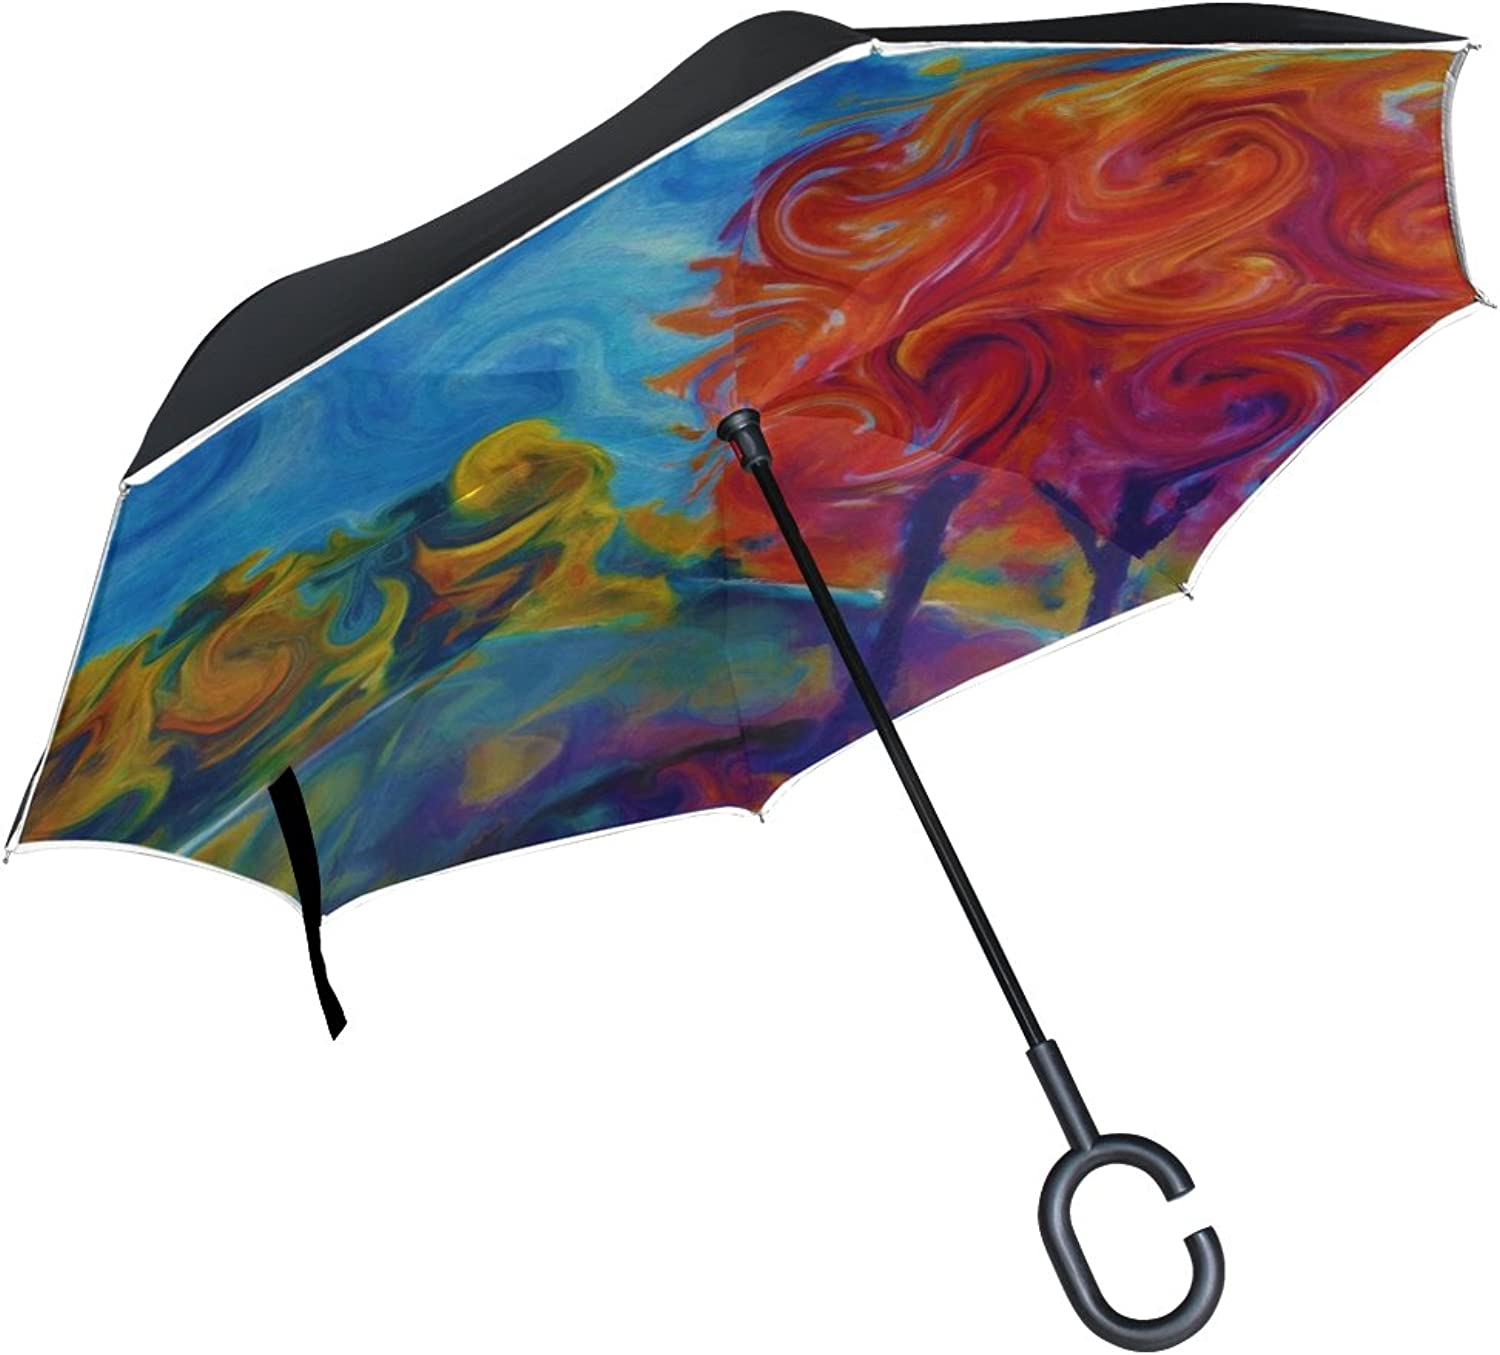 Double Layer Ingreened Abstract Landscape Nature Beauty Brush Art Umbrellas Reverse Folding Umbrella Windproof Uv Predection Big Straight Umbrella for Car Rain Outdoor with CShaped Handle